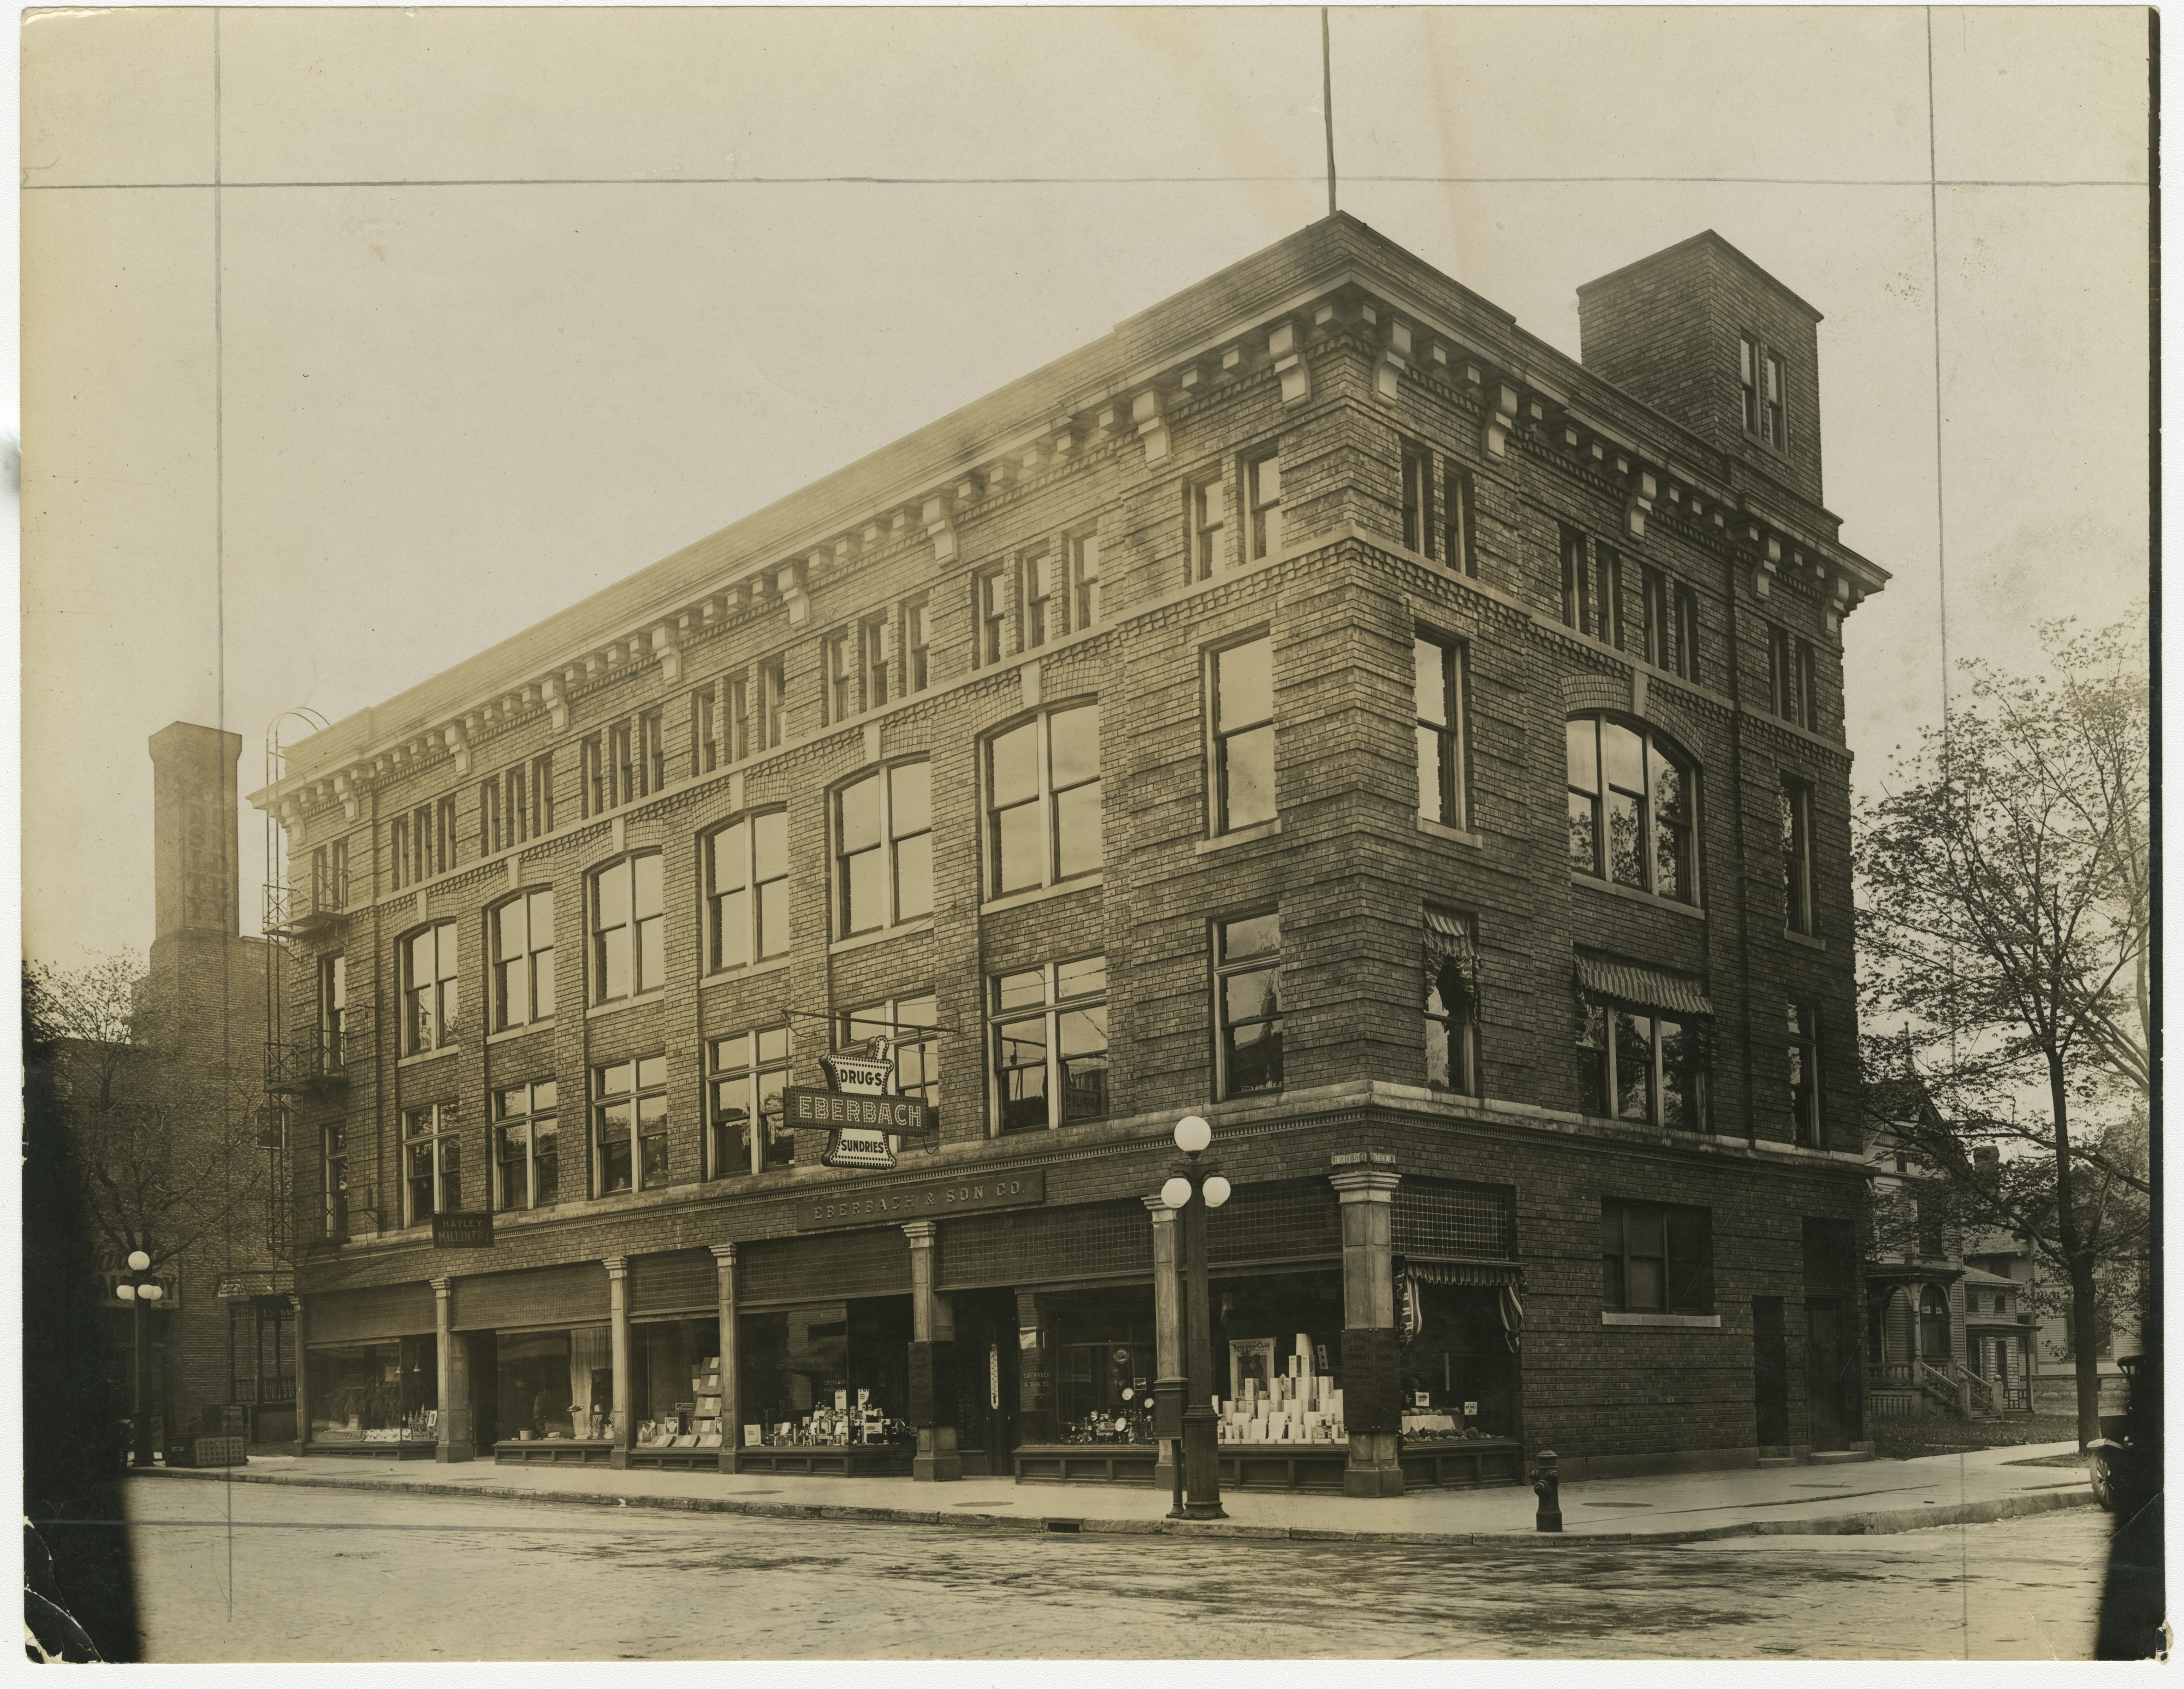 Eberbach Drug Co., corner of 4th Avenue and E. Liberty St, Ann Arbor, undated image